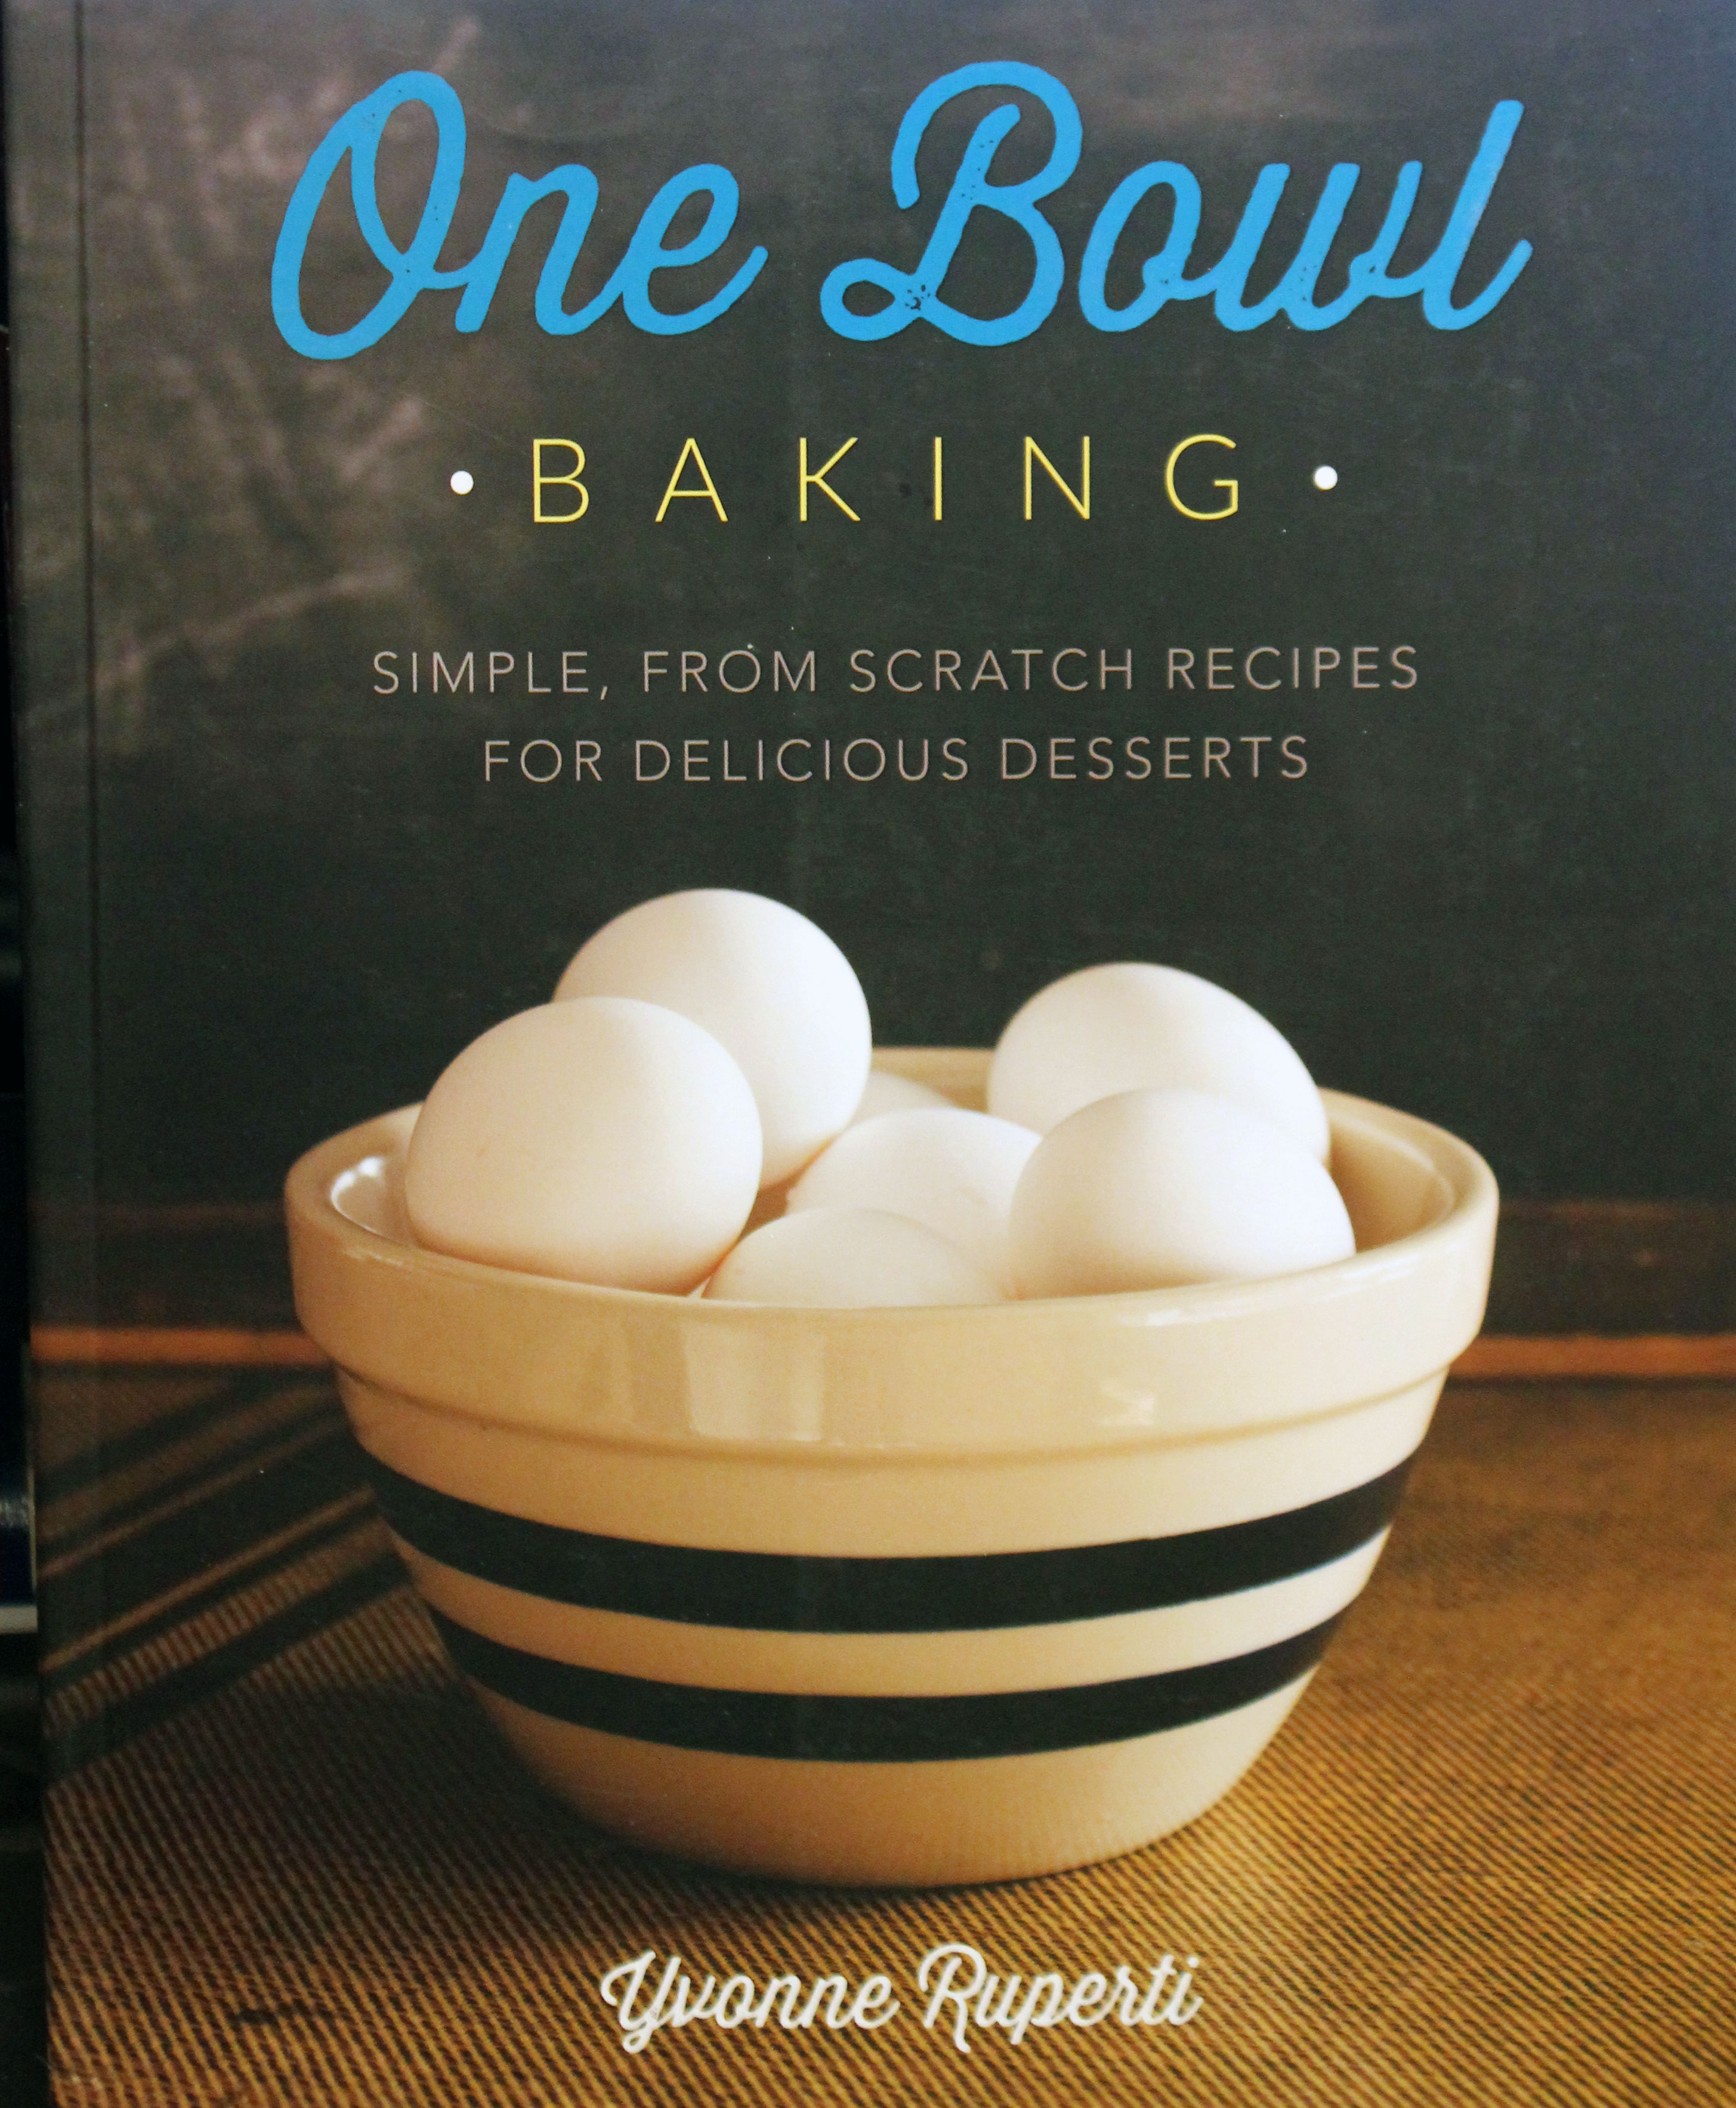 TBT Cookbook Review: One Bowl Baking [2013]